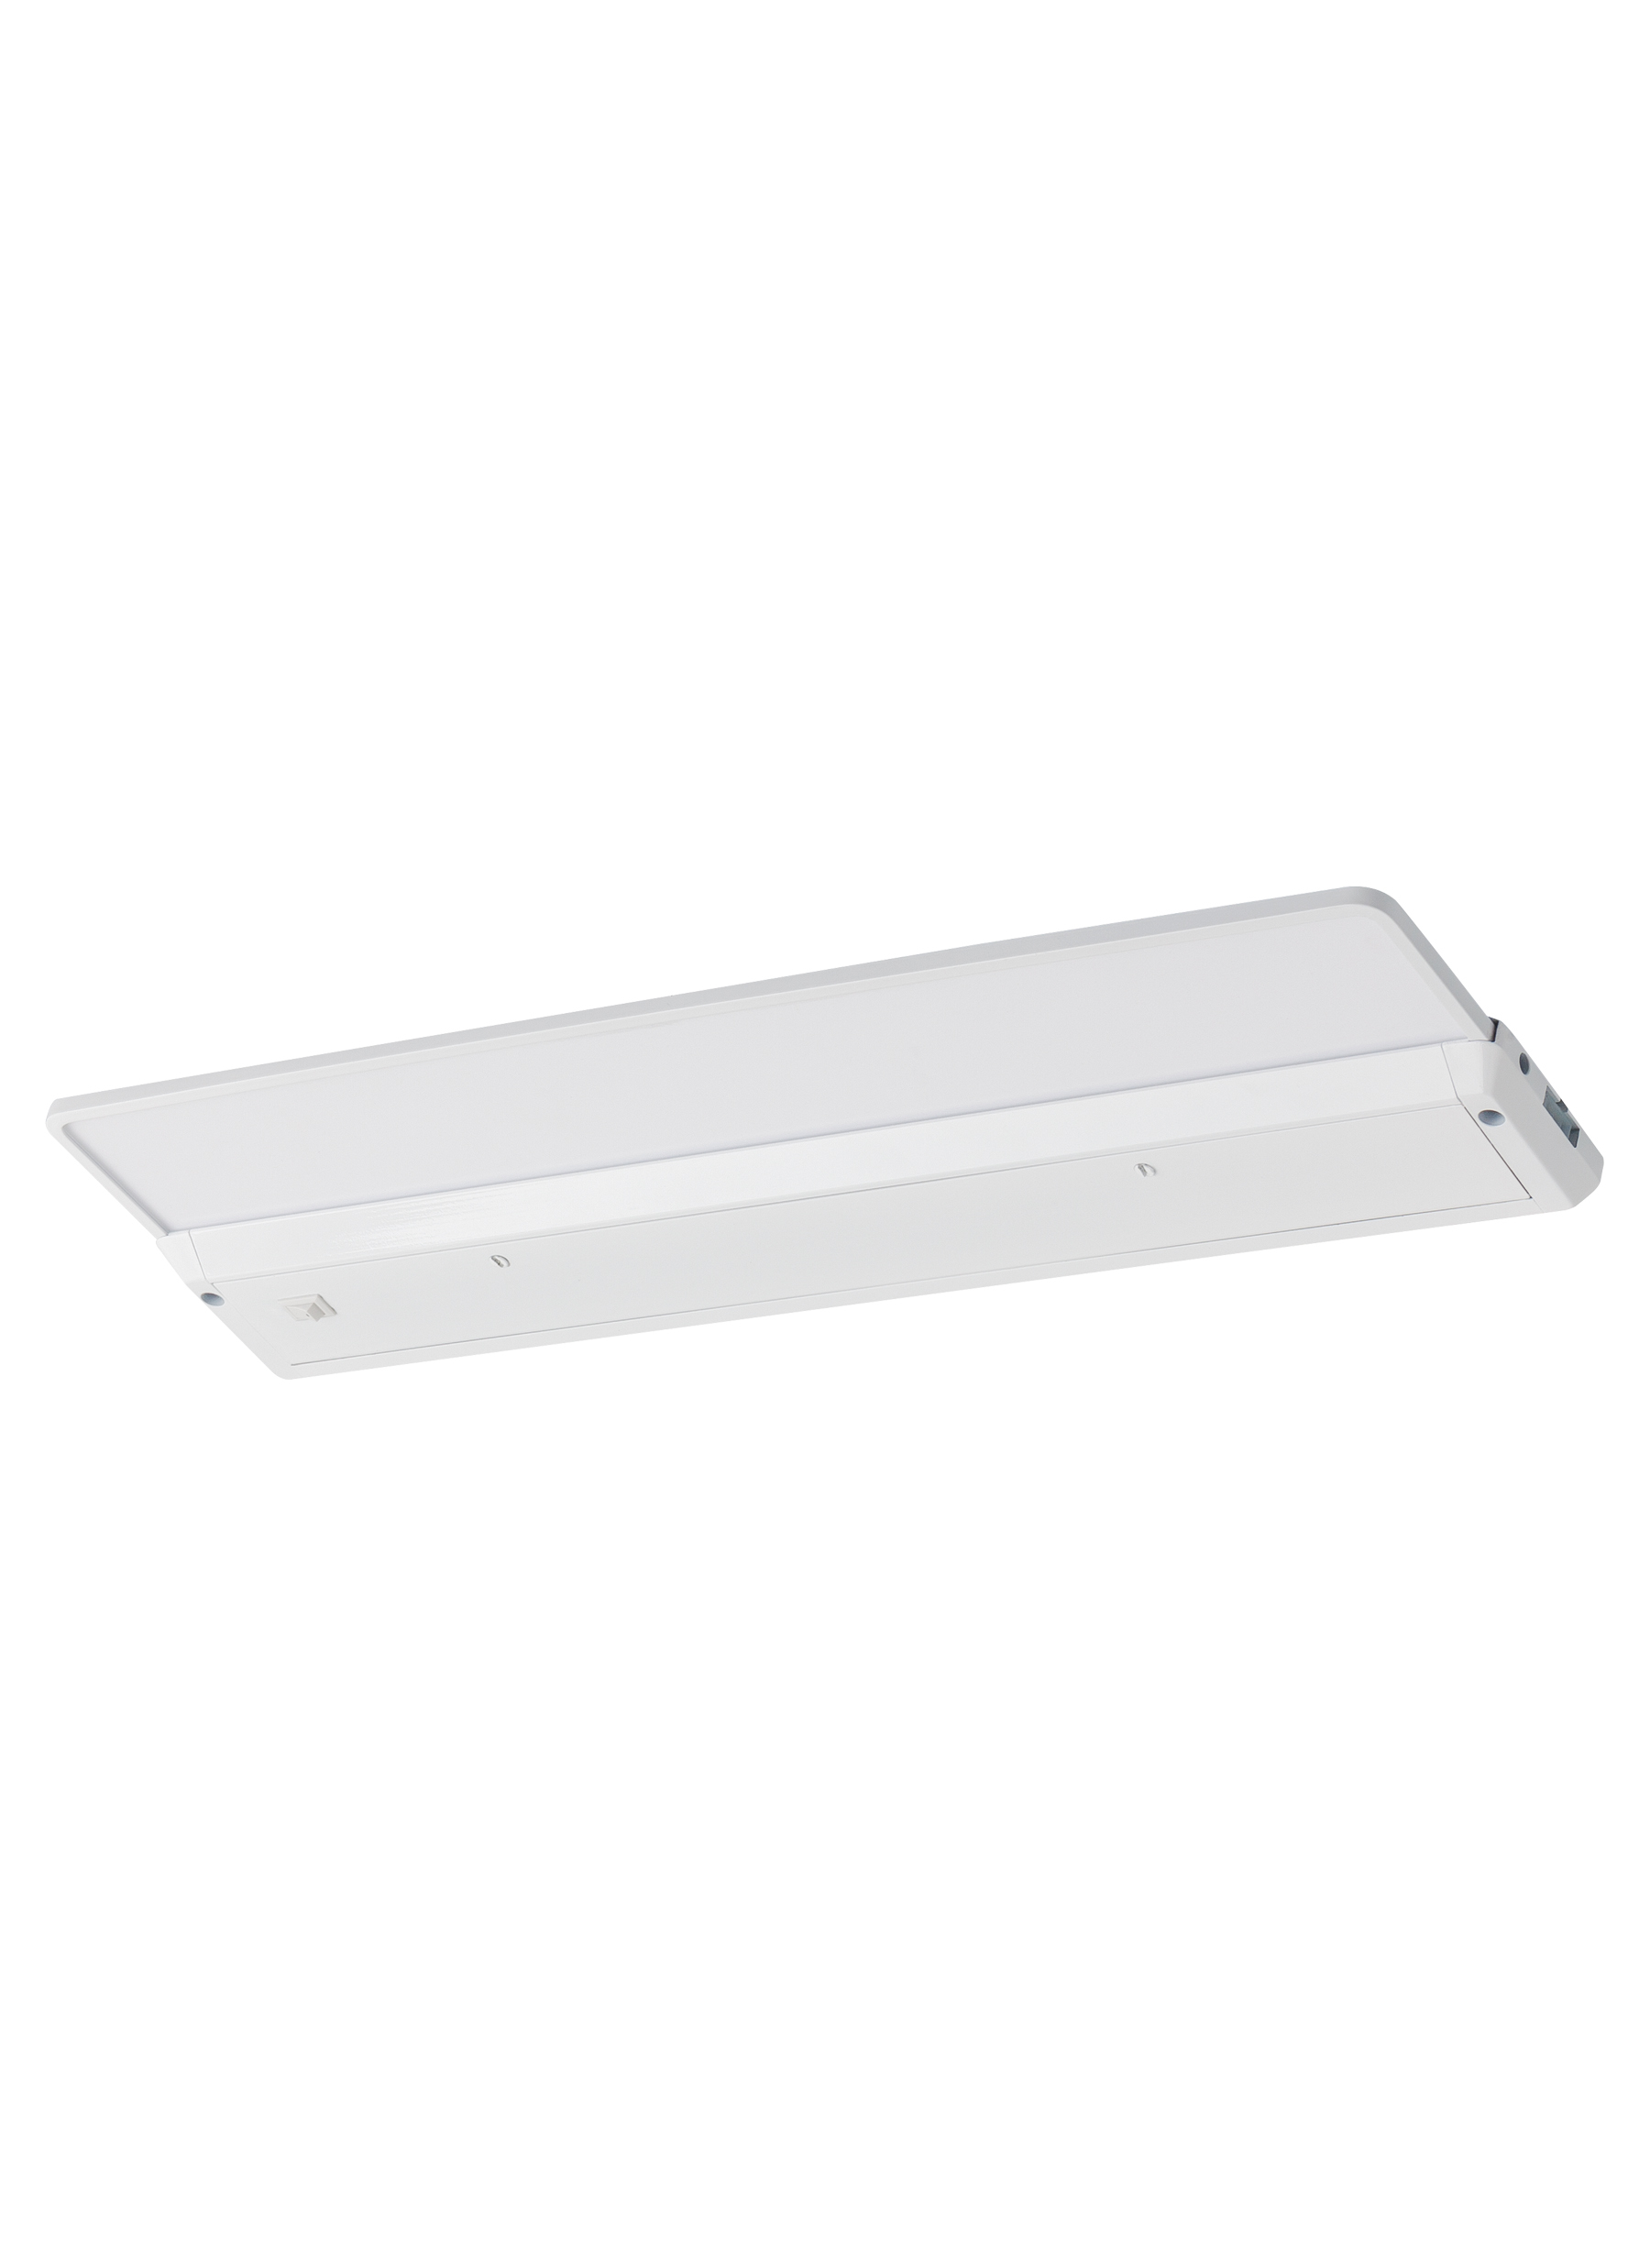 Ambiance Lighting Systems 98874s 15